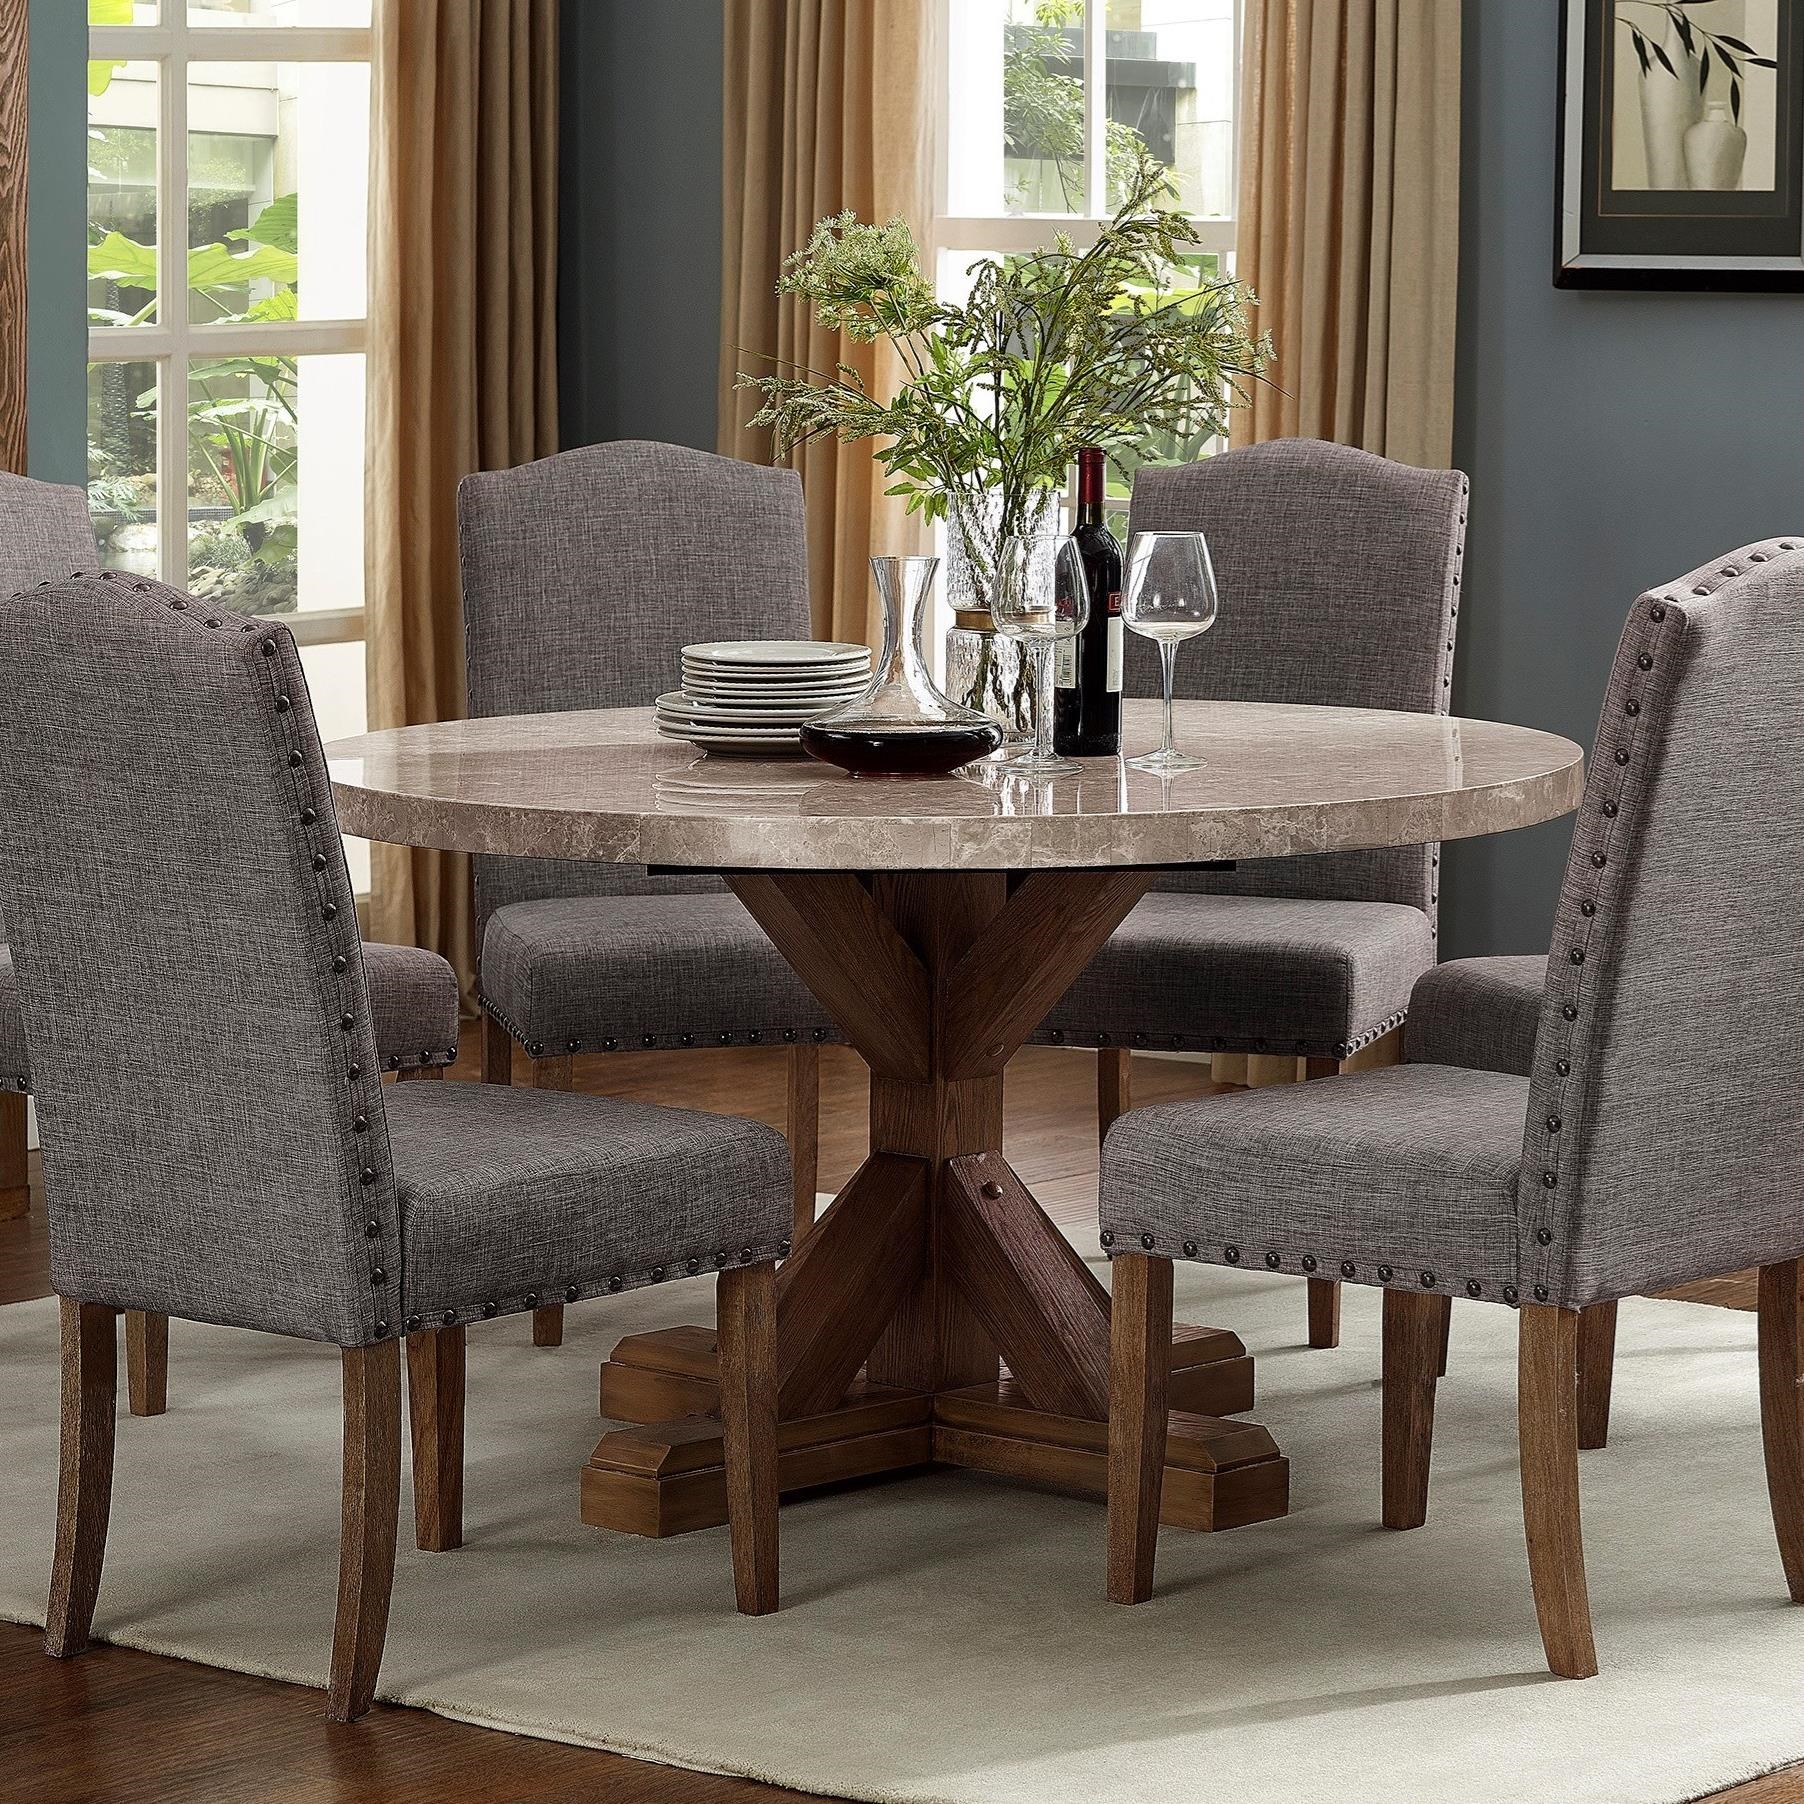 Kitchen Tables Furniture: Crown Mark Vesper Dining Round Dining Table With Pedestal